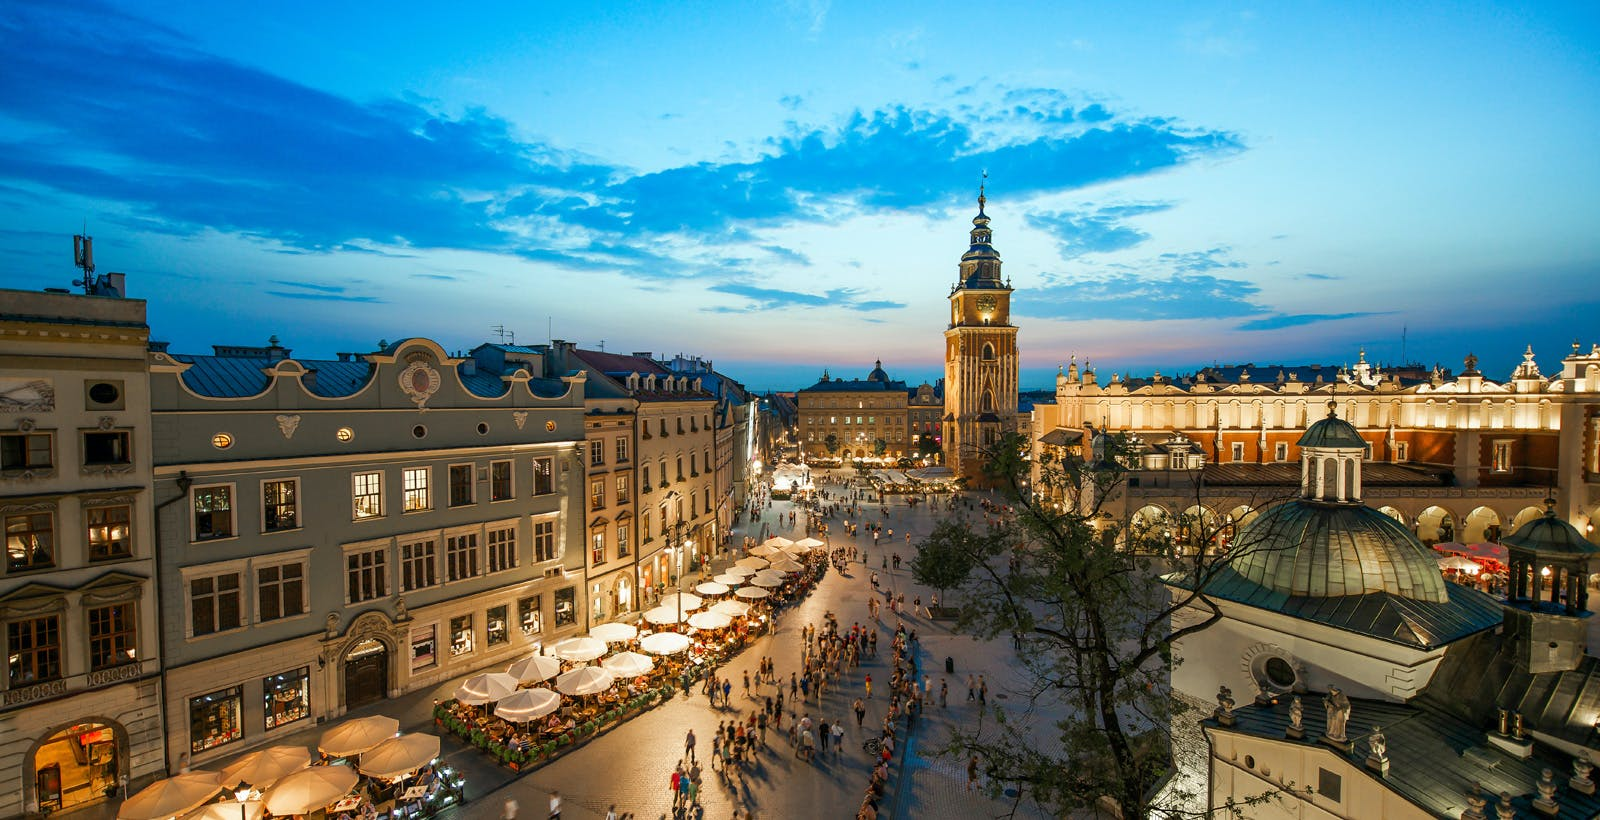 Top 12 Things to do in Krakow Poland